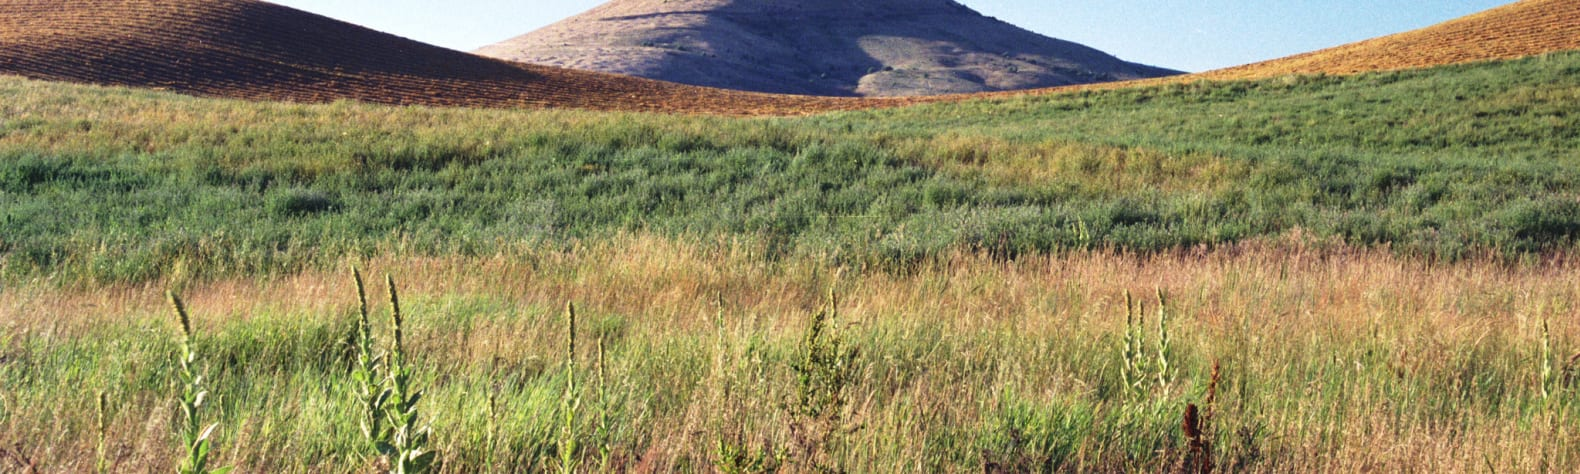 Steptoe Butte State Park Heritage Site